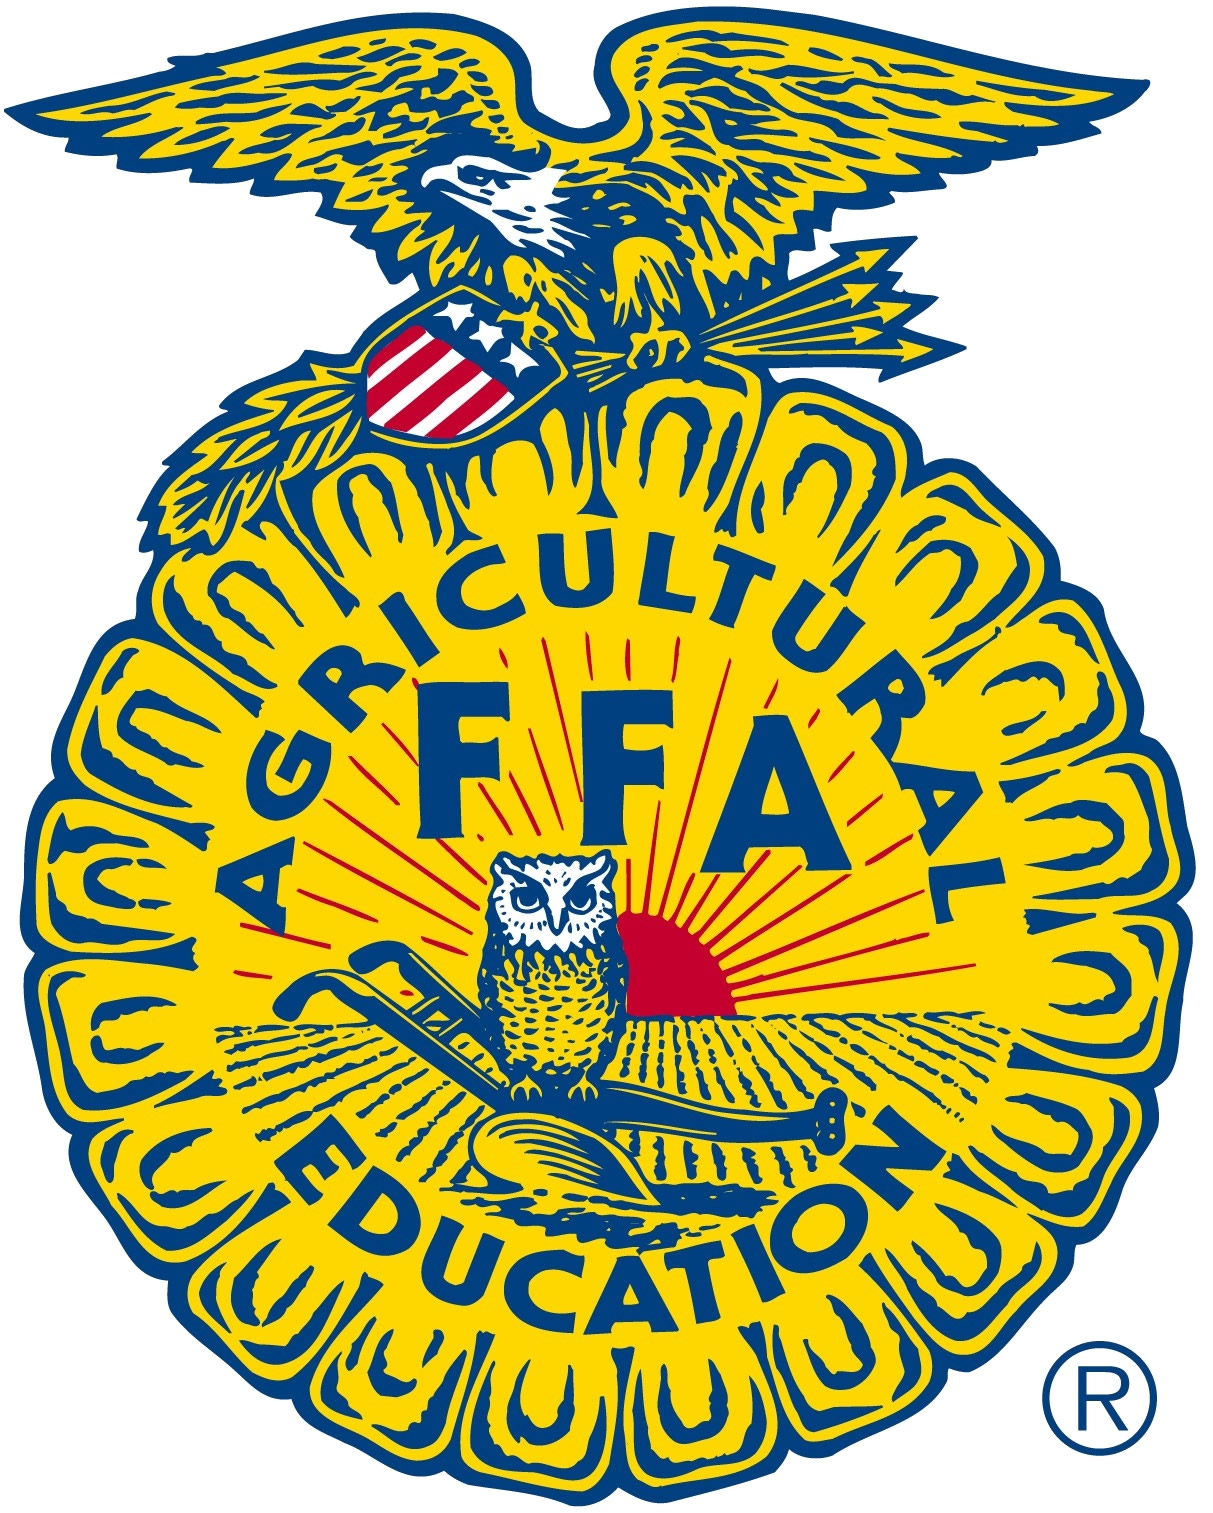 Mattoon FFA Alumni Meeting